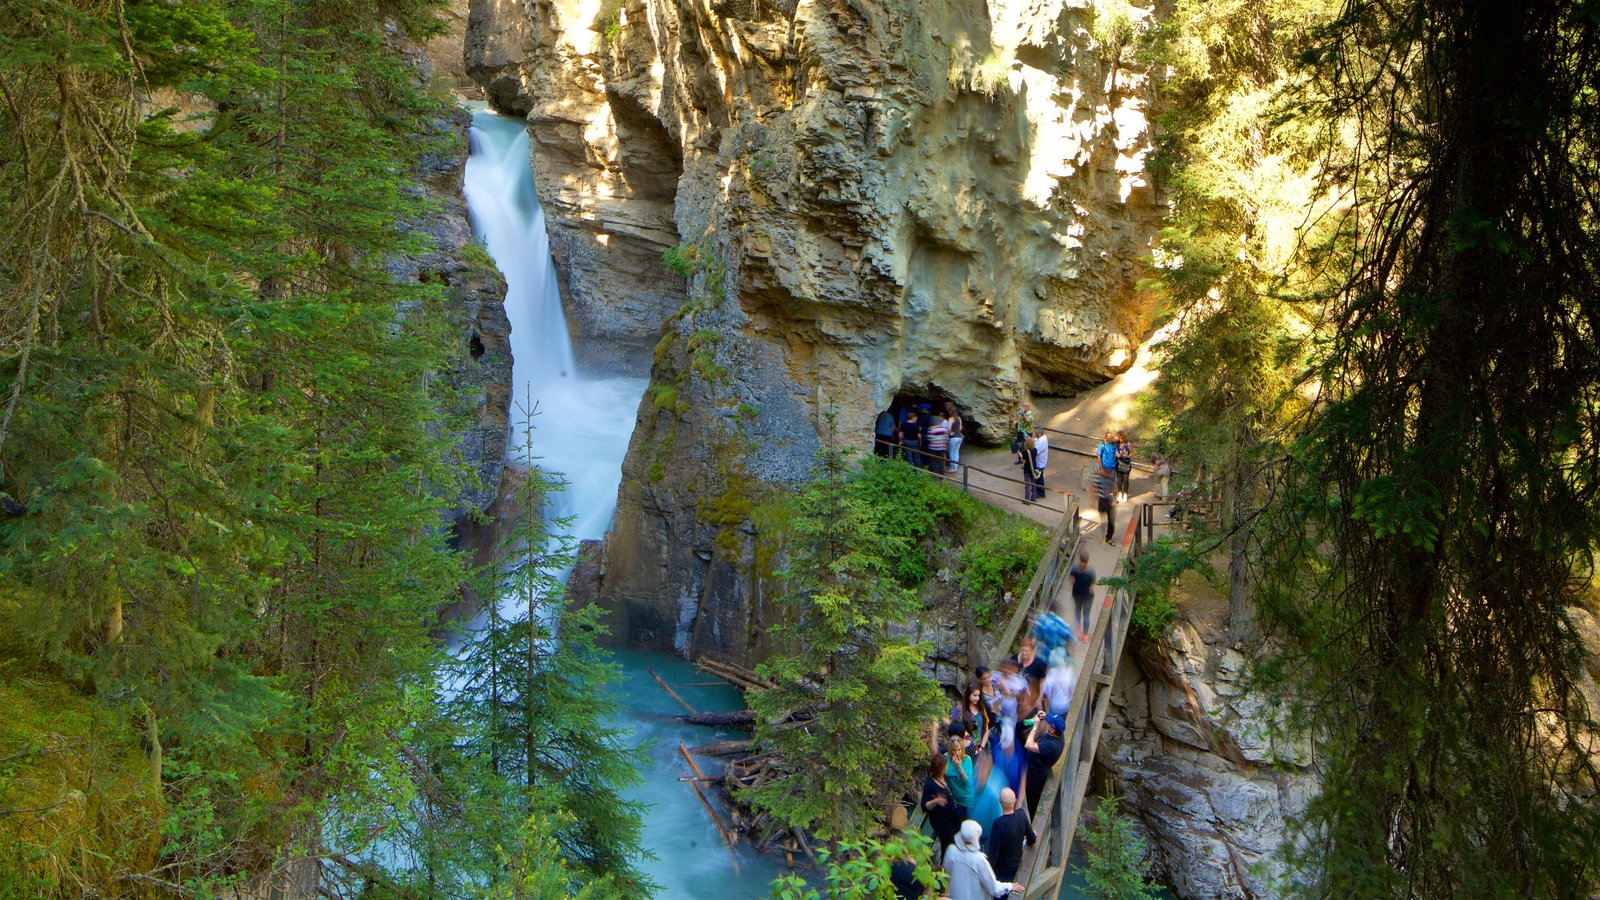 Johnston Canyon showing a river or creek and a gorge or canyon as well as a small group of people